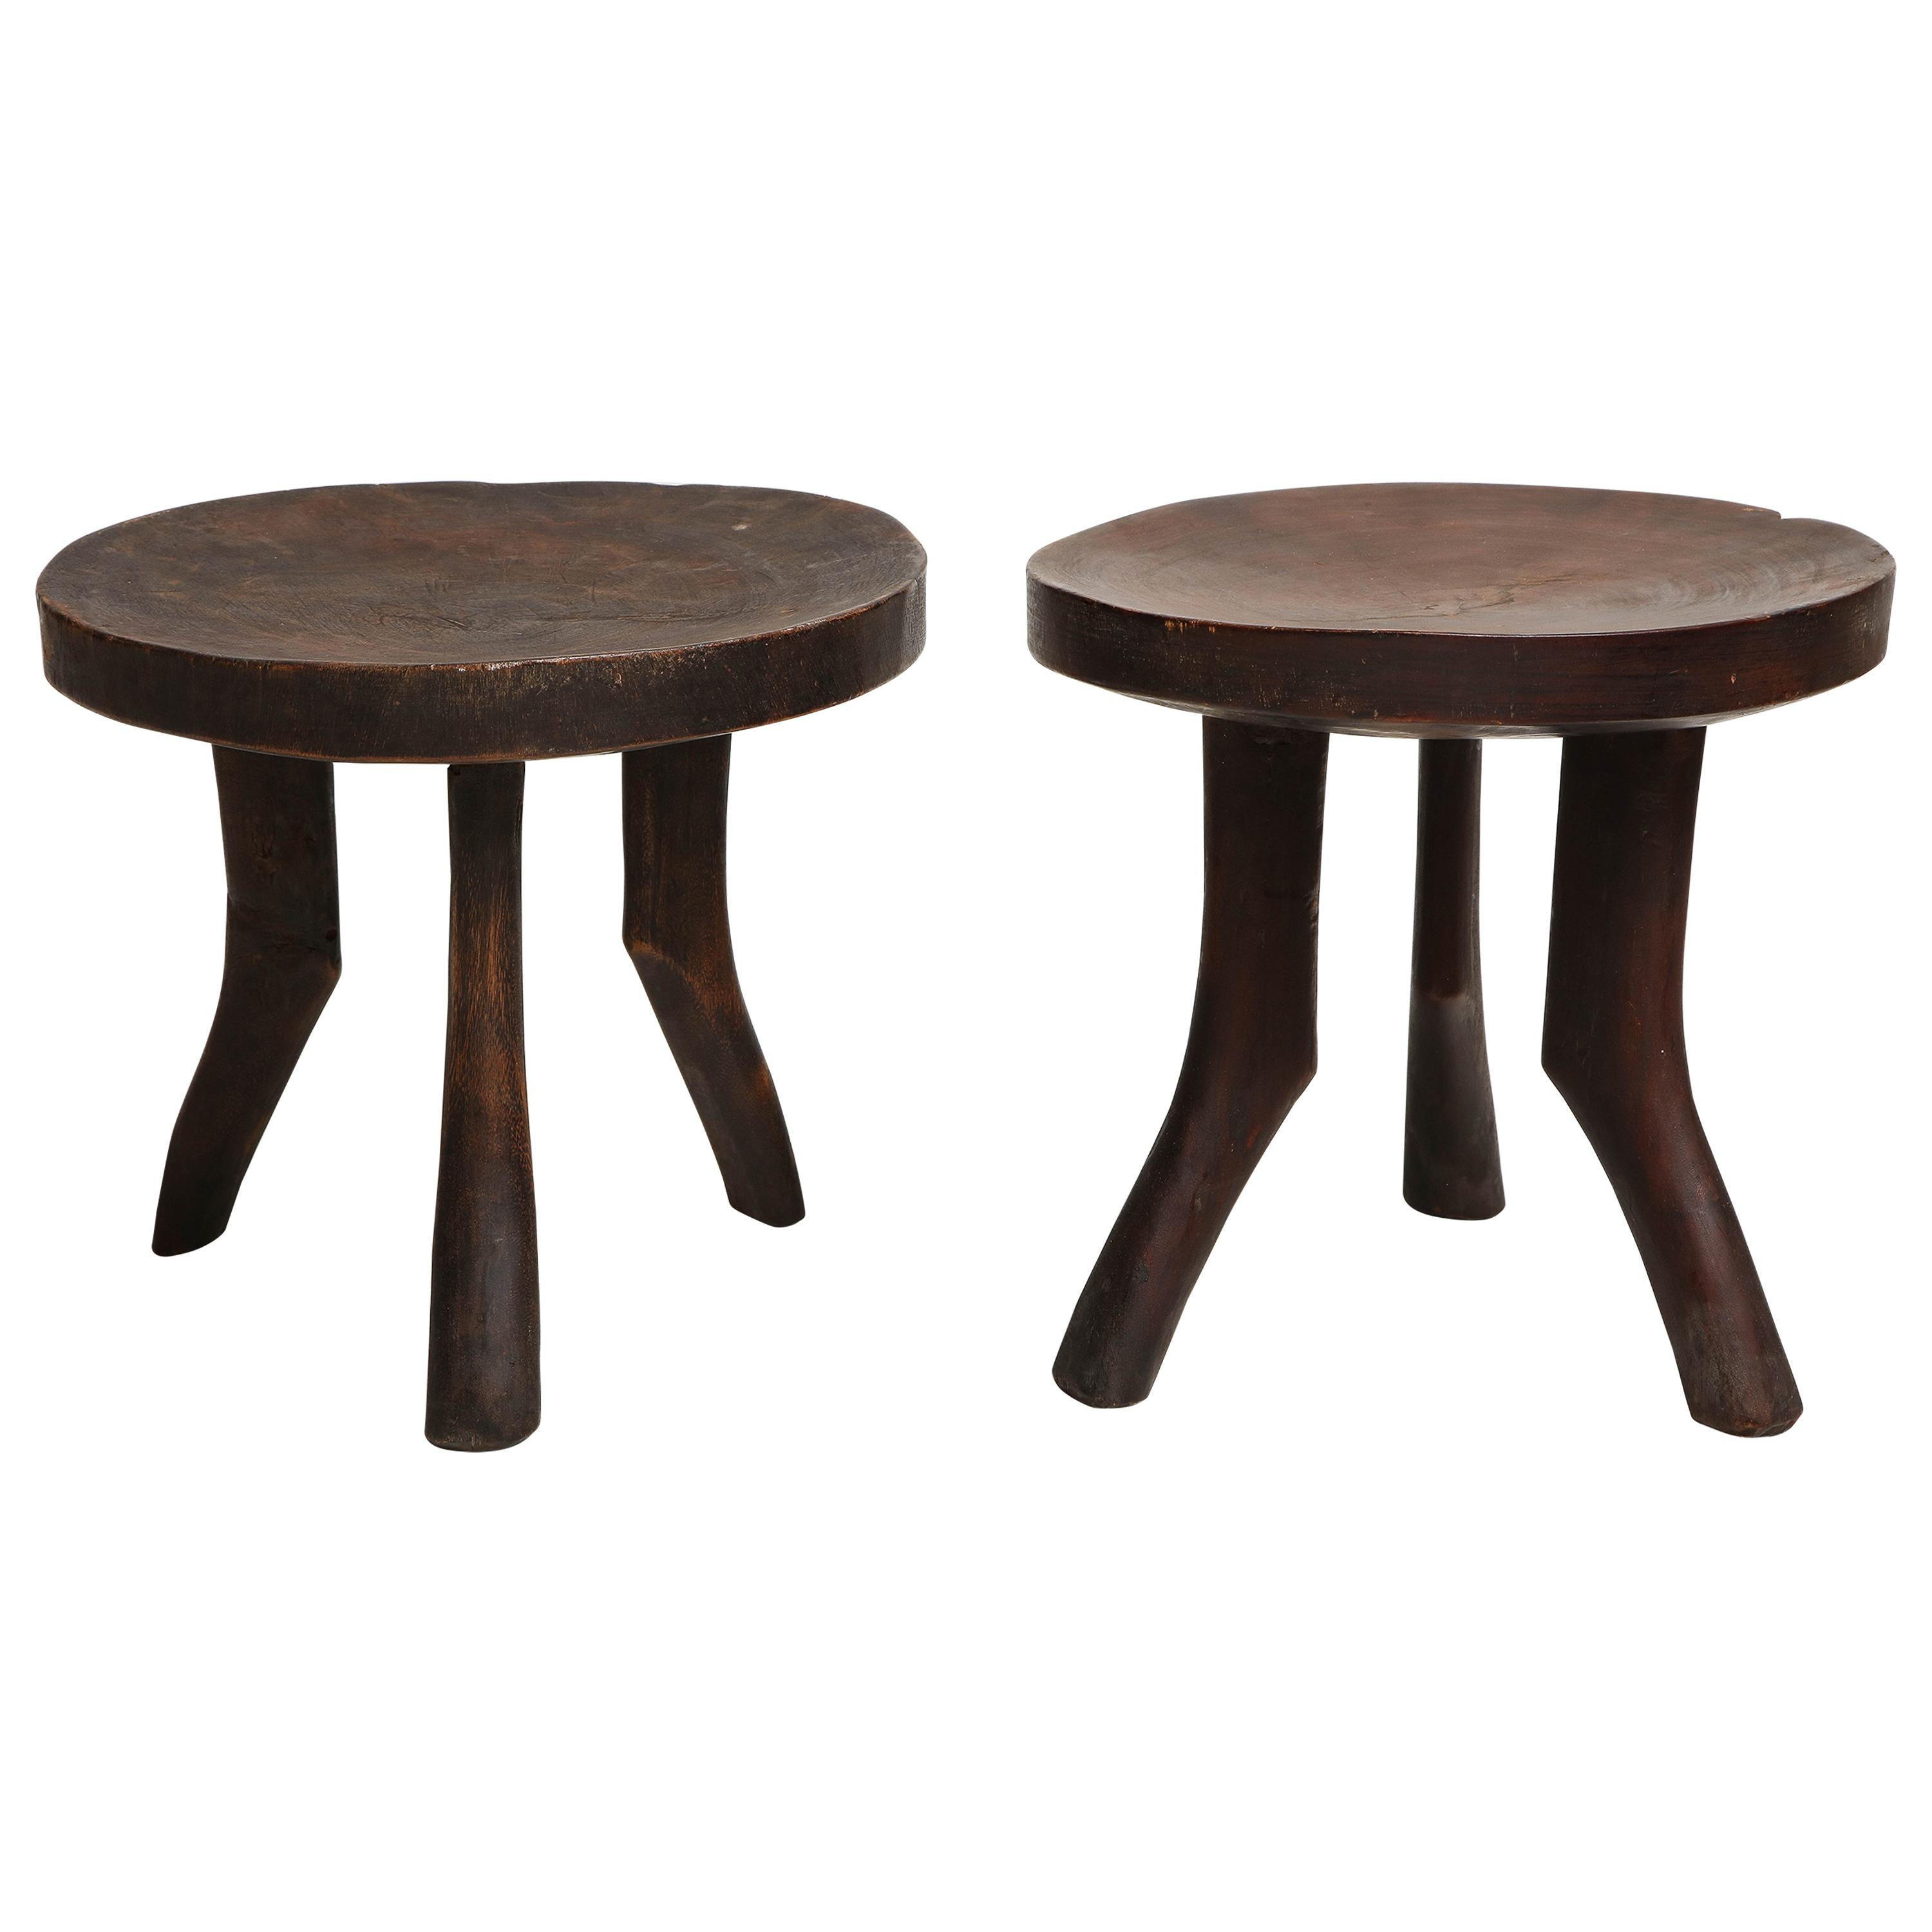 Pair of Vintage Stools in the Perriand Manner